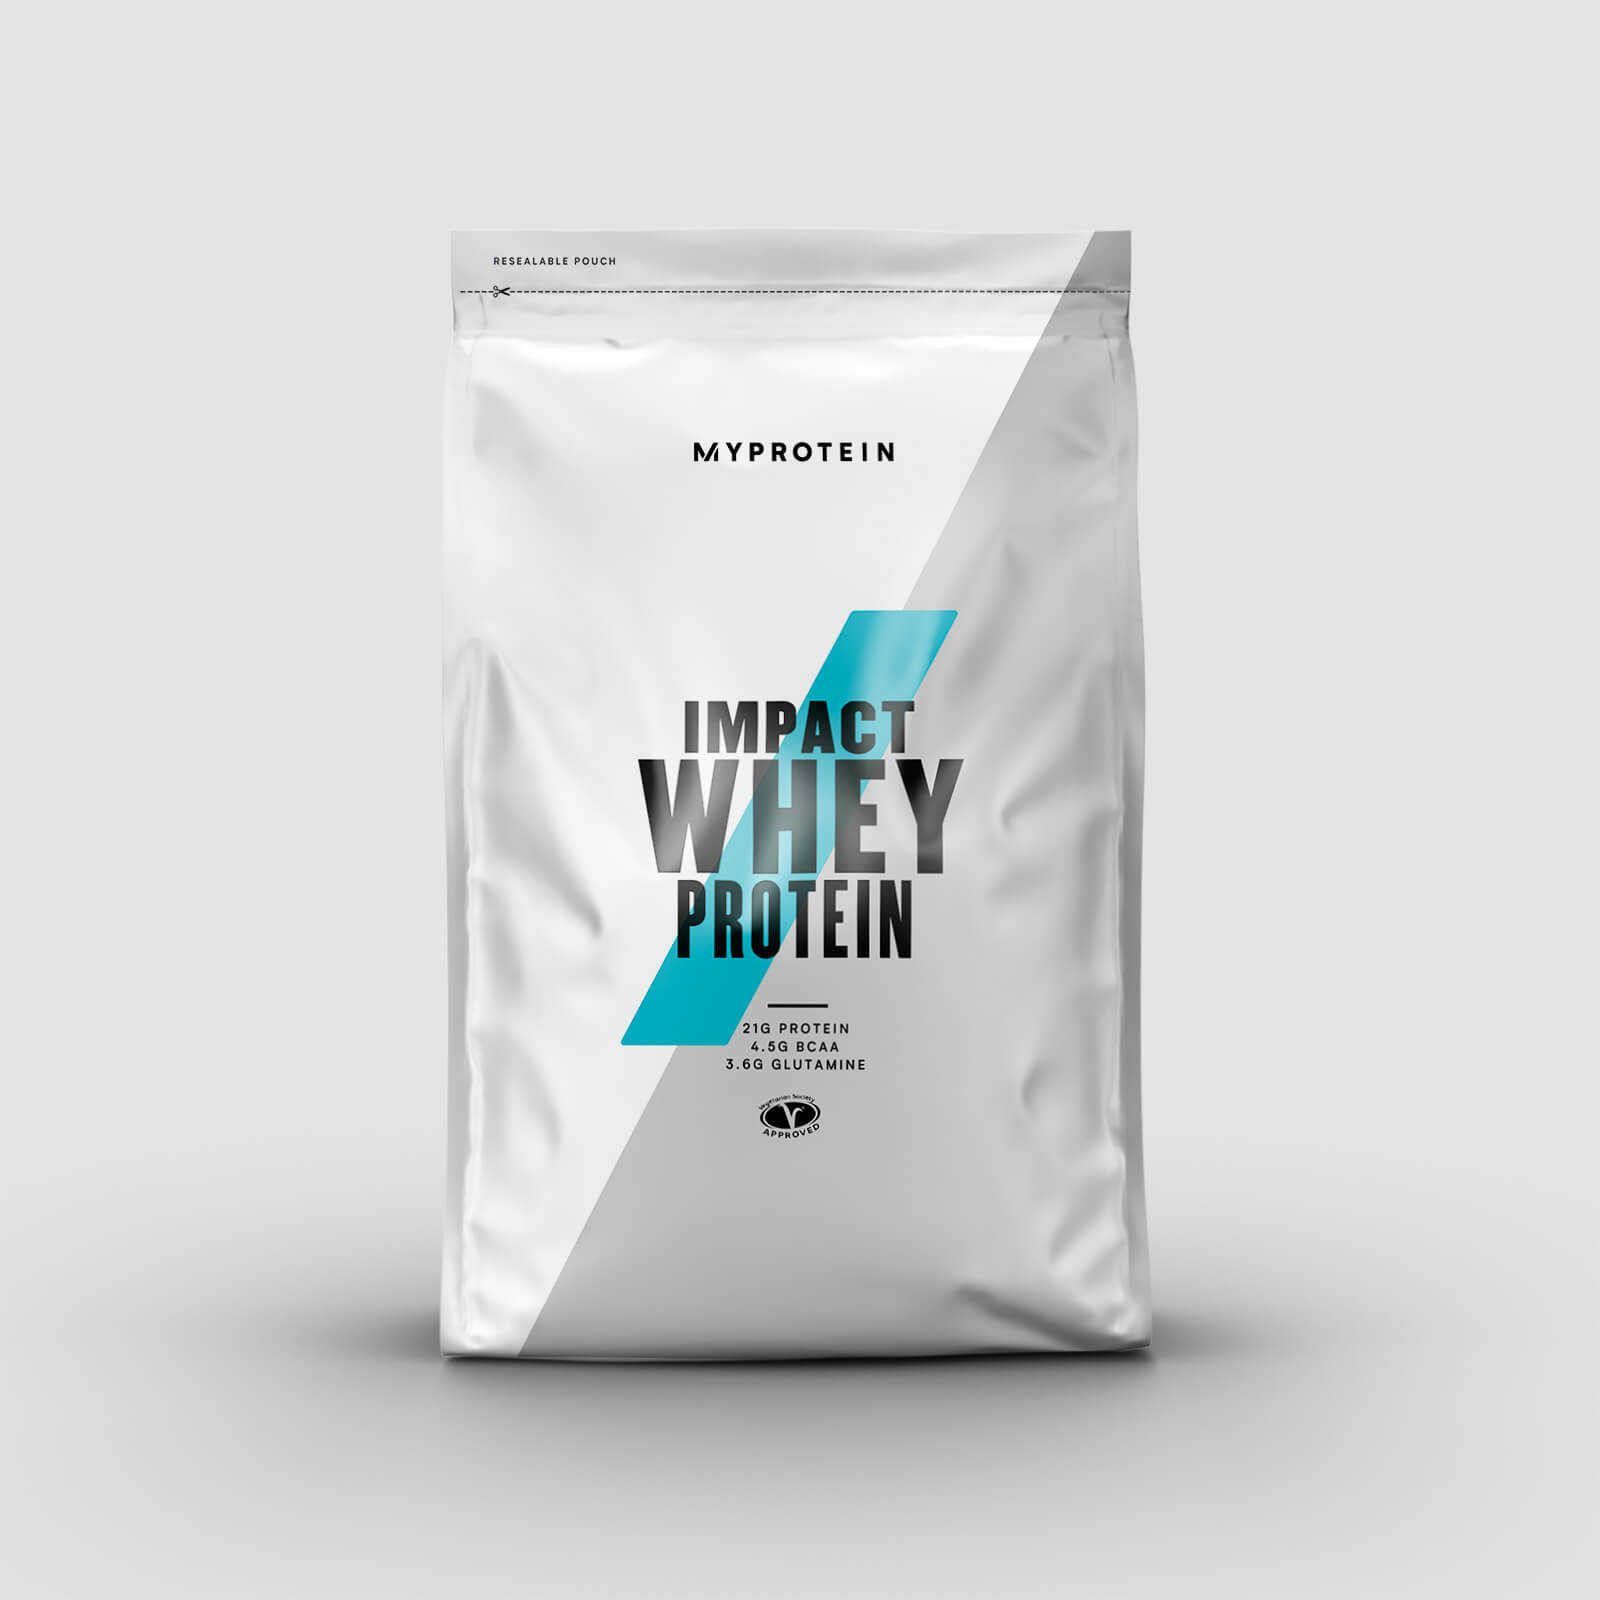 Myprotein 11-lbs Impact Whey Protein (200 Servings of 19g)